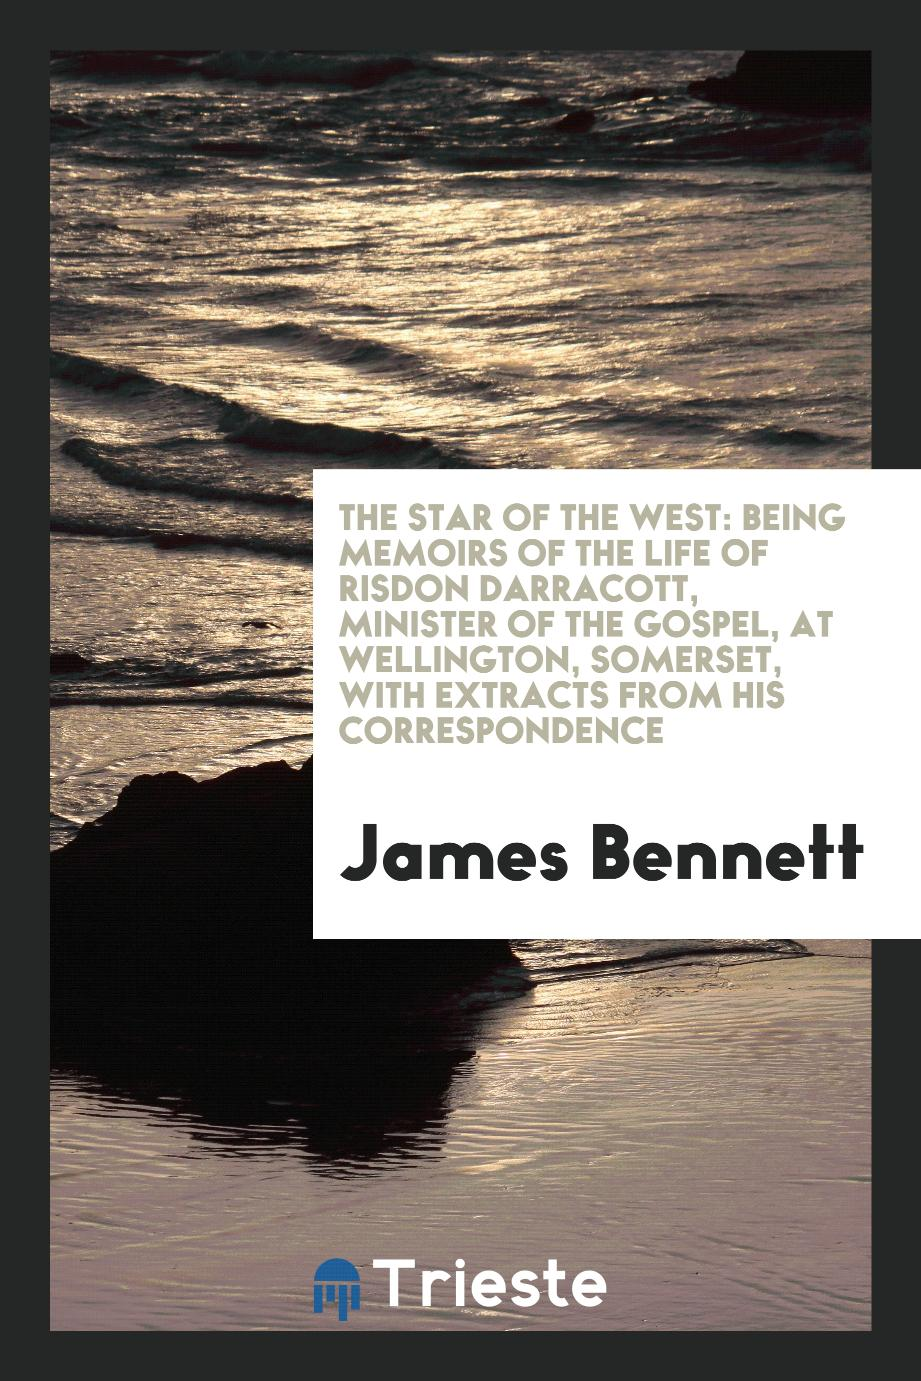 The Star of the west: being memoirs of the life of Risdon Darracott, minister of the gospel, at Wellington, Somerset, with extracts from his correspondence